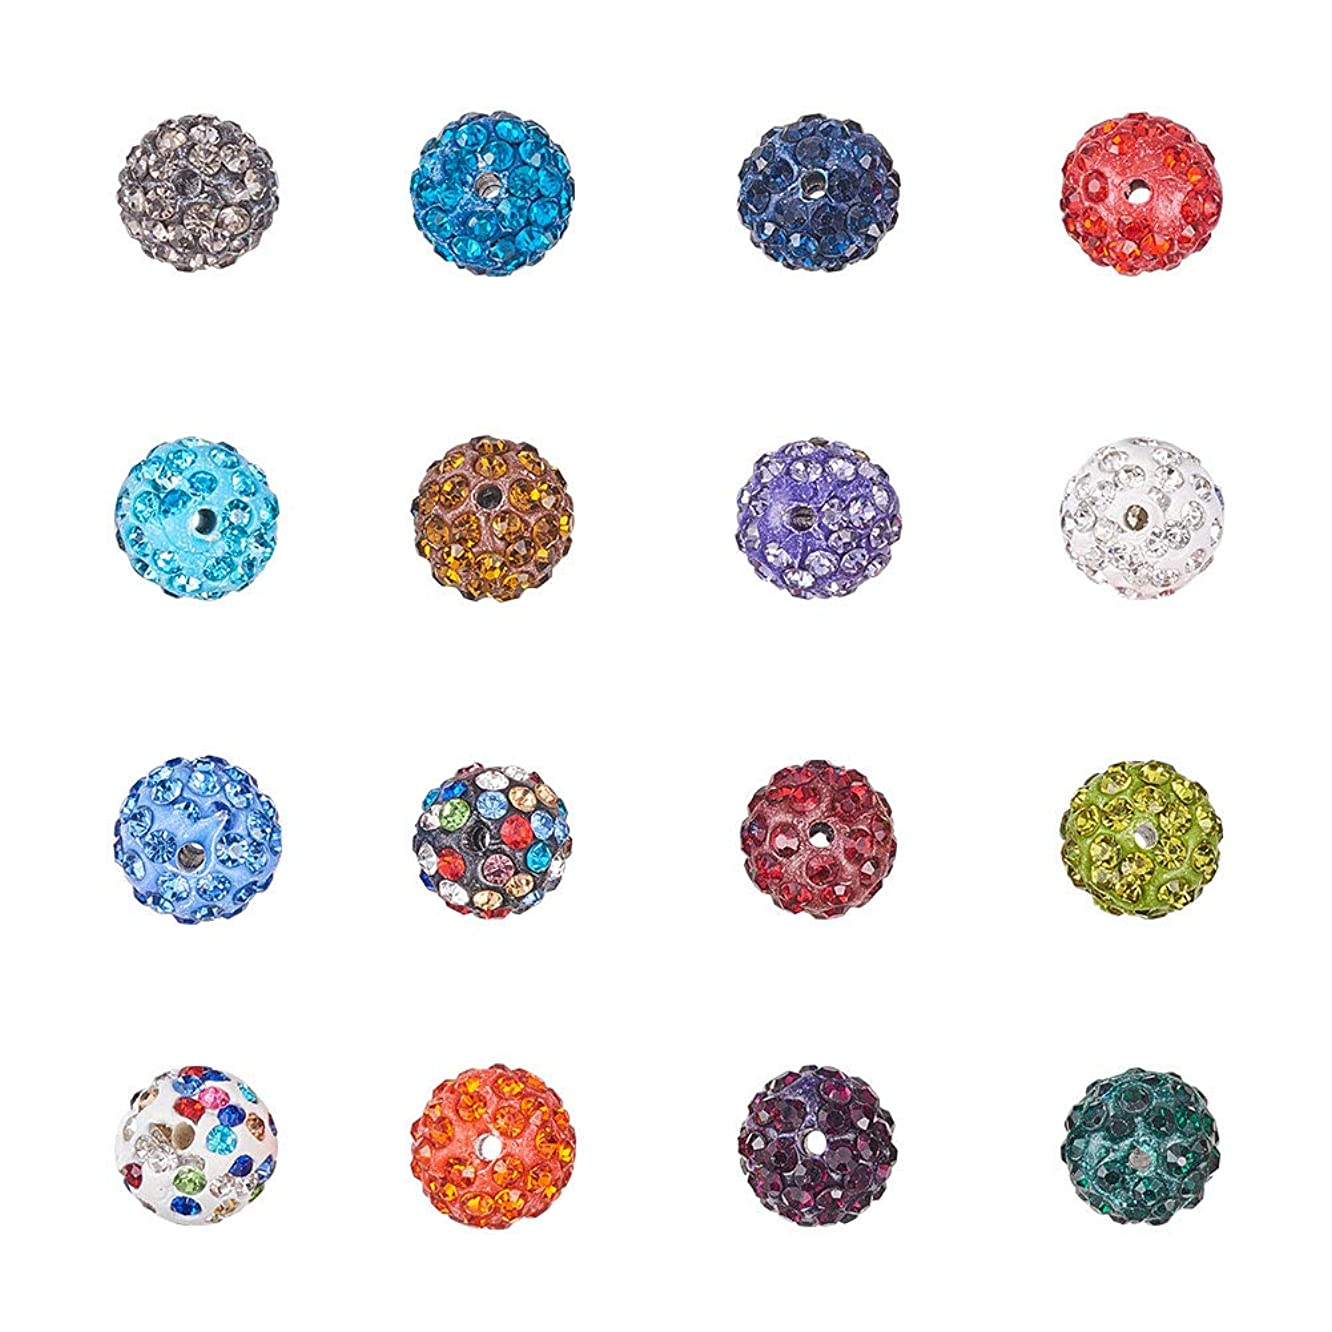 NBEADS 100 Pcs 12mm Random Mixed Color Polymer Clay Clear Gemstones Cubic Zirconia CZ Stones Pave Micro Setting Disco Ball Spacer Beads, Round Bracelet Connector Charms Beads for Jewelry Making